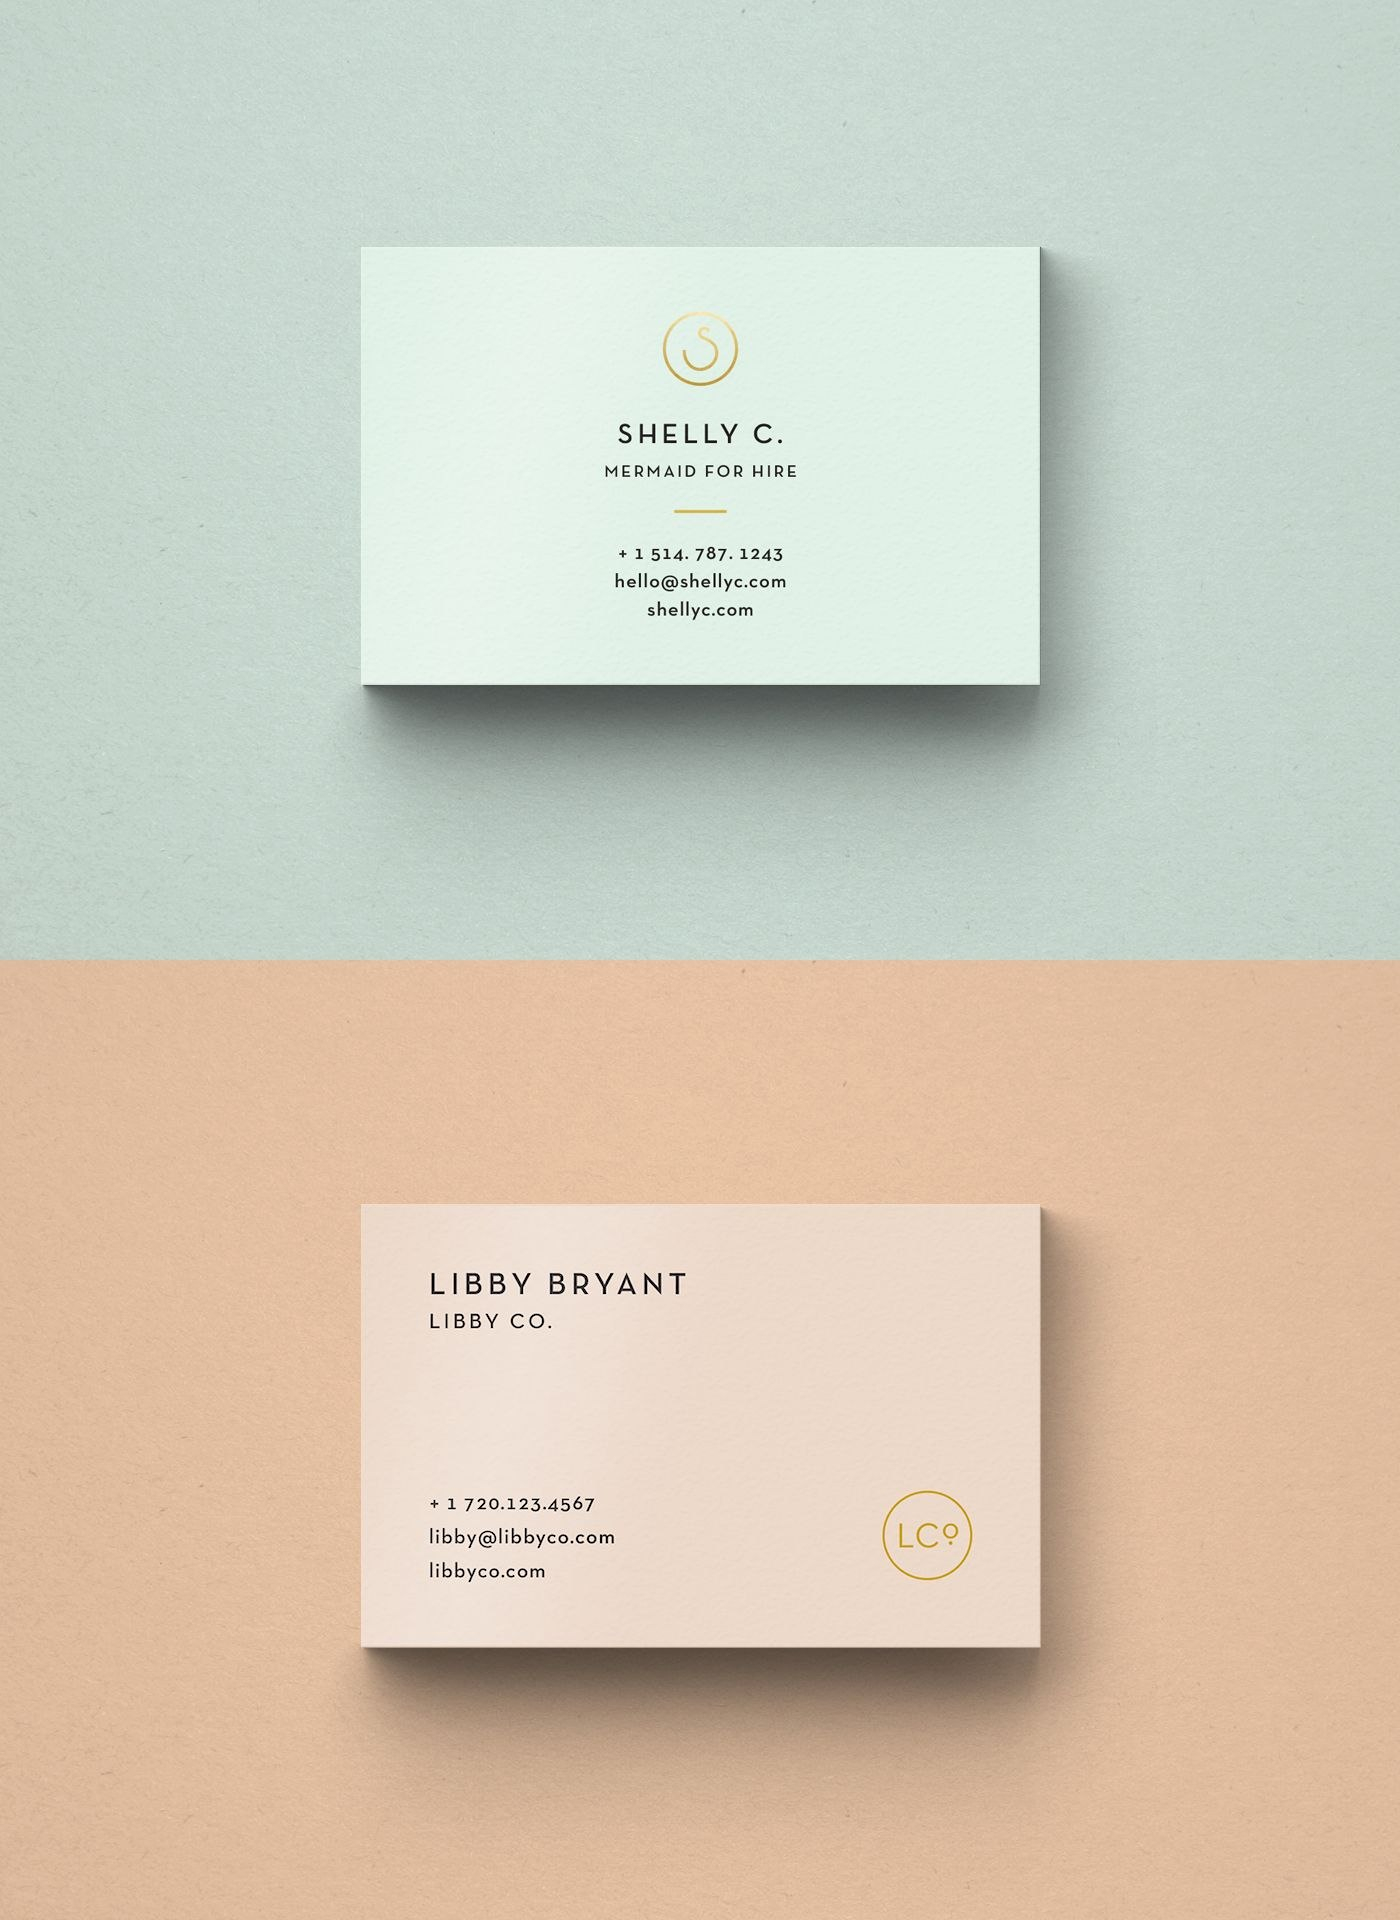 Free Business Card Templates  Intentional Branding  Website Design With Designer Visiting Cards Templates